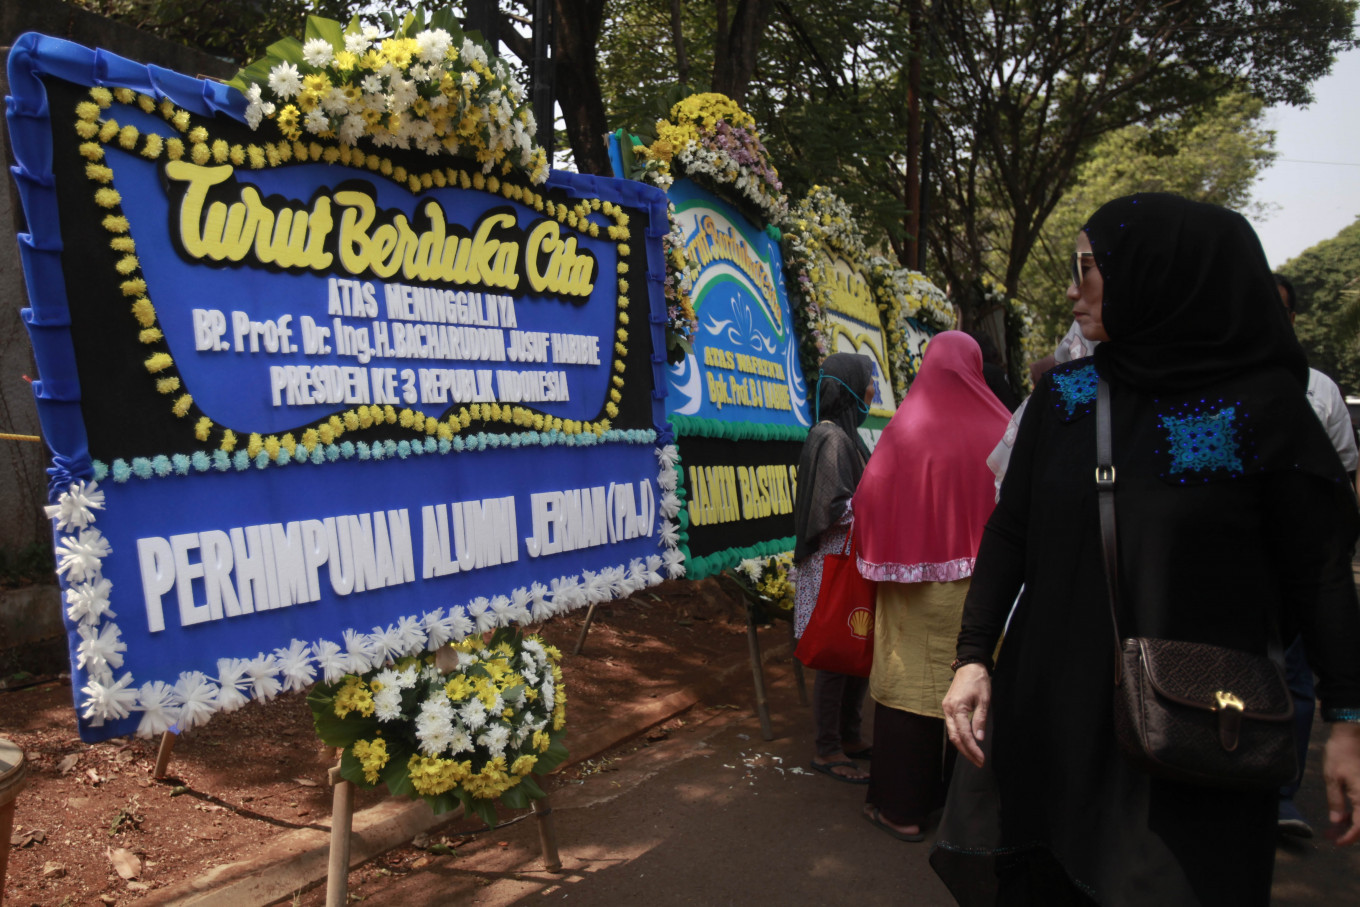 International dignitaries, communities mourn BJ Habibie's demise